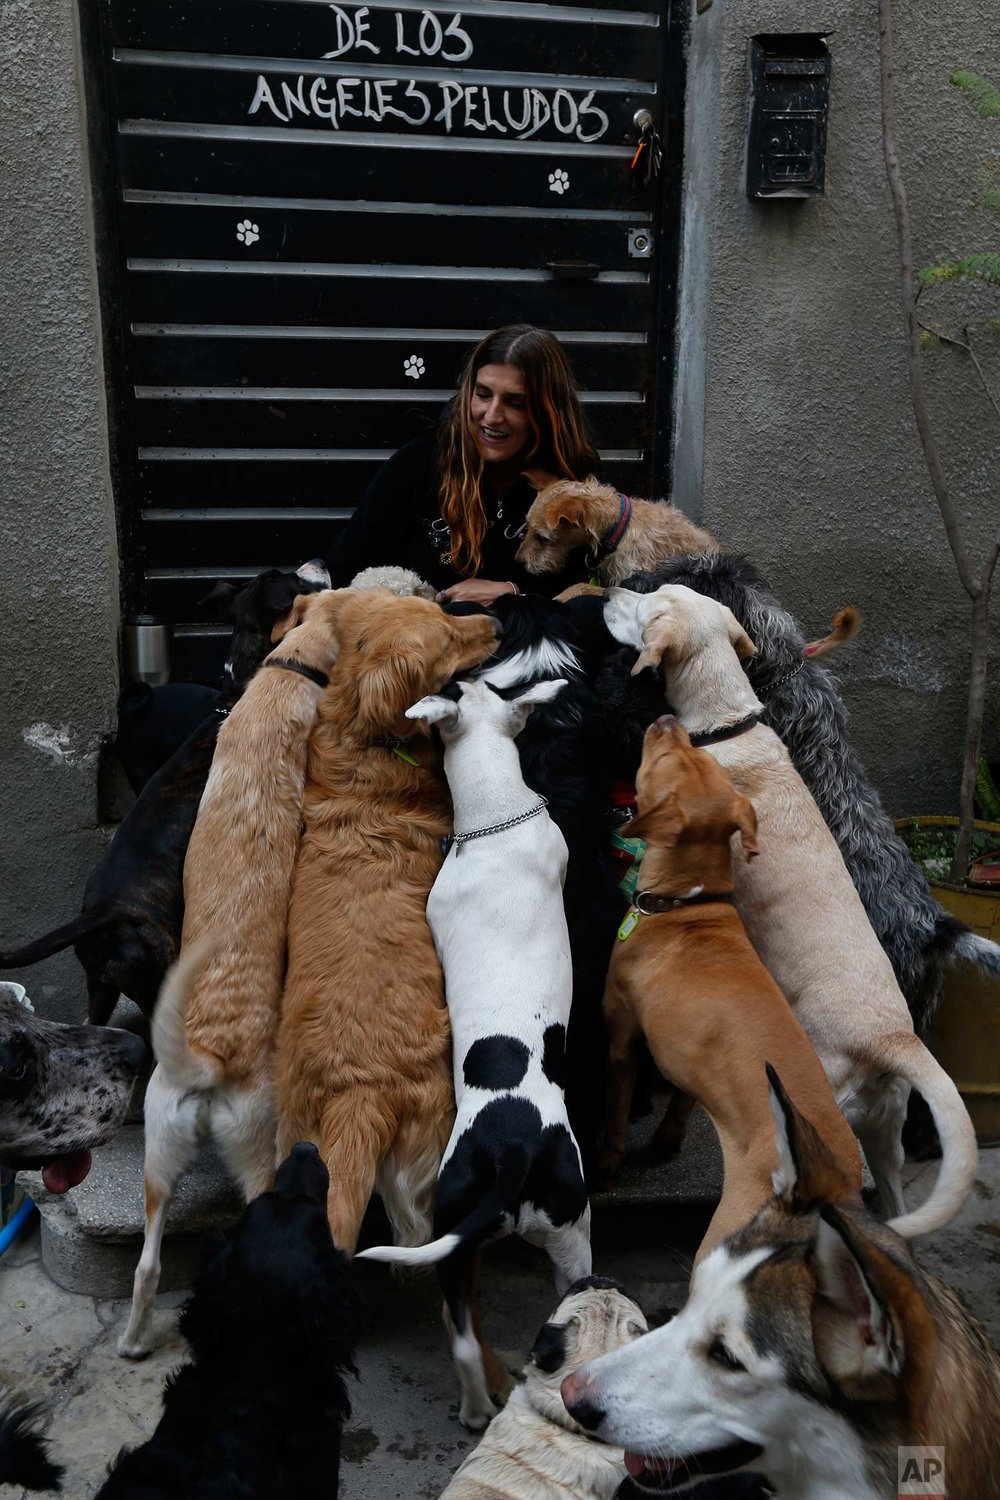 In this Saturday, Dec. 23, 2017, photo, Mariam Gutierrez de Velasco pets her dogs at their home in Mexico City. When the quake struck on Sept. 19, 2017, Mariam and her husband Jair Benavides who run a shelter had 54 dogs in their care. (AP Photo/Marco Ugarte)